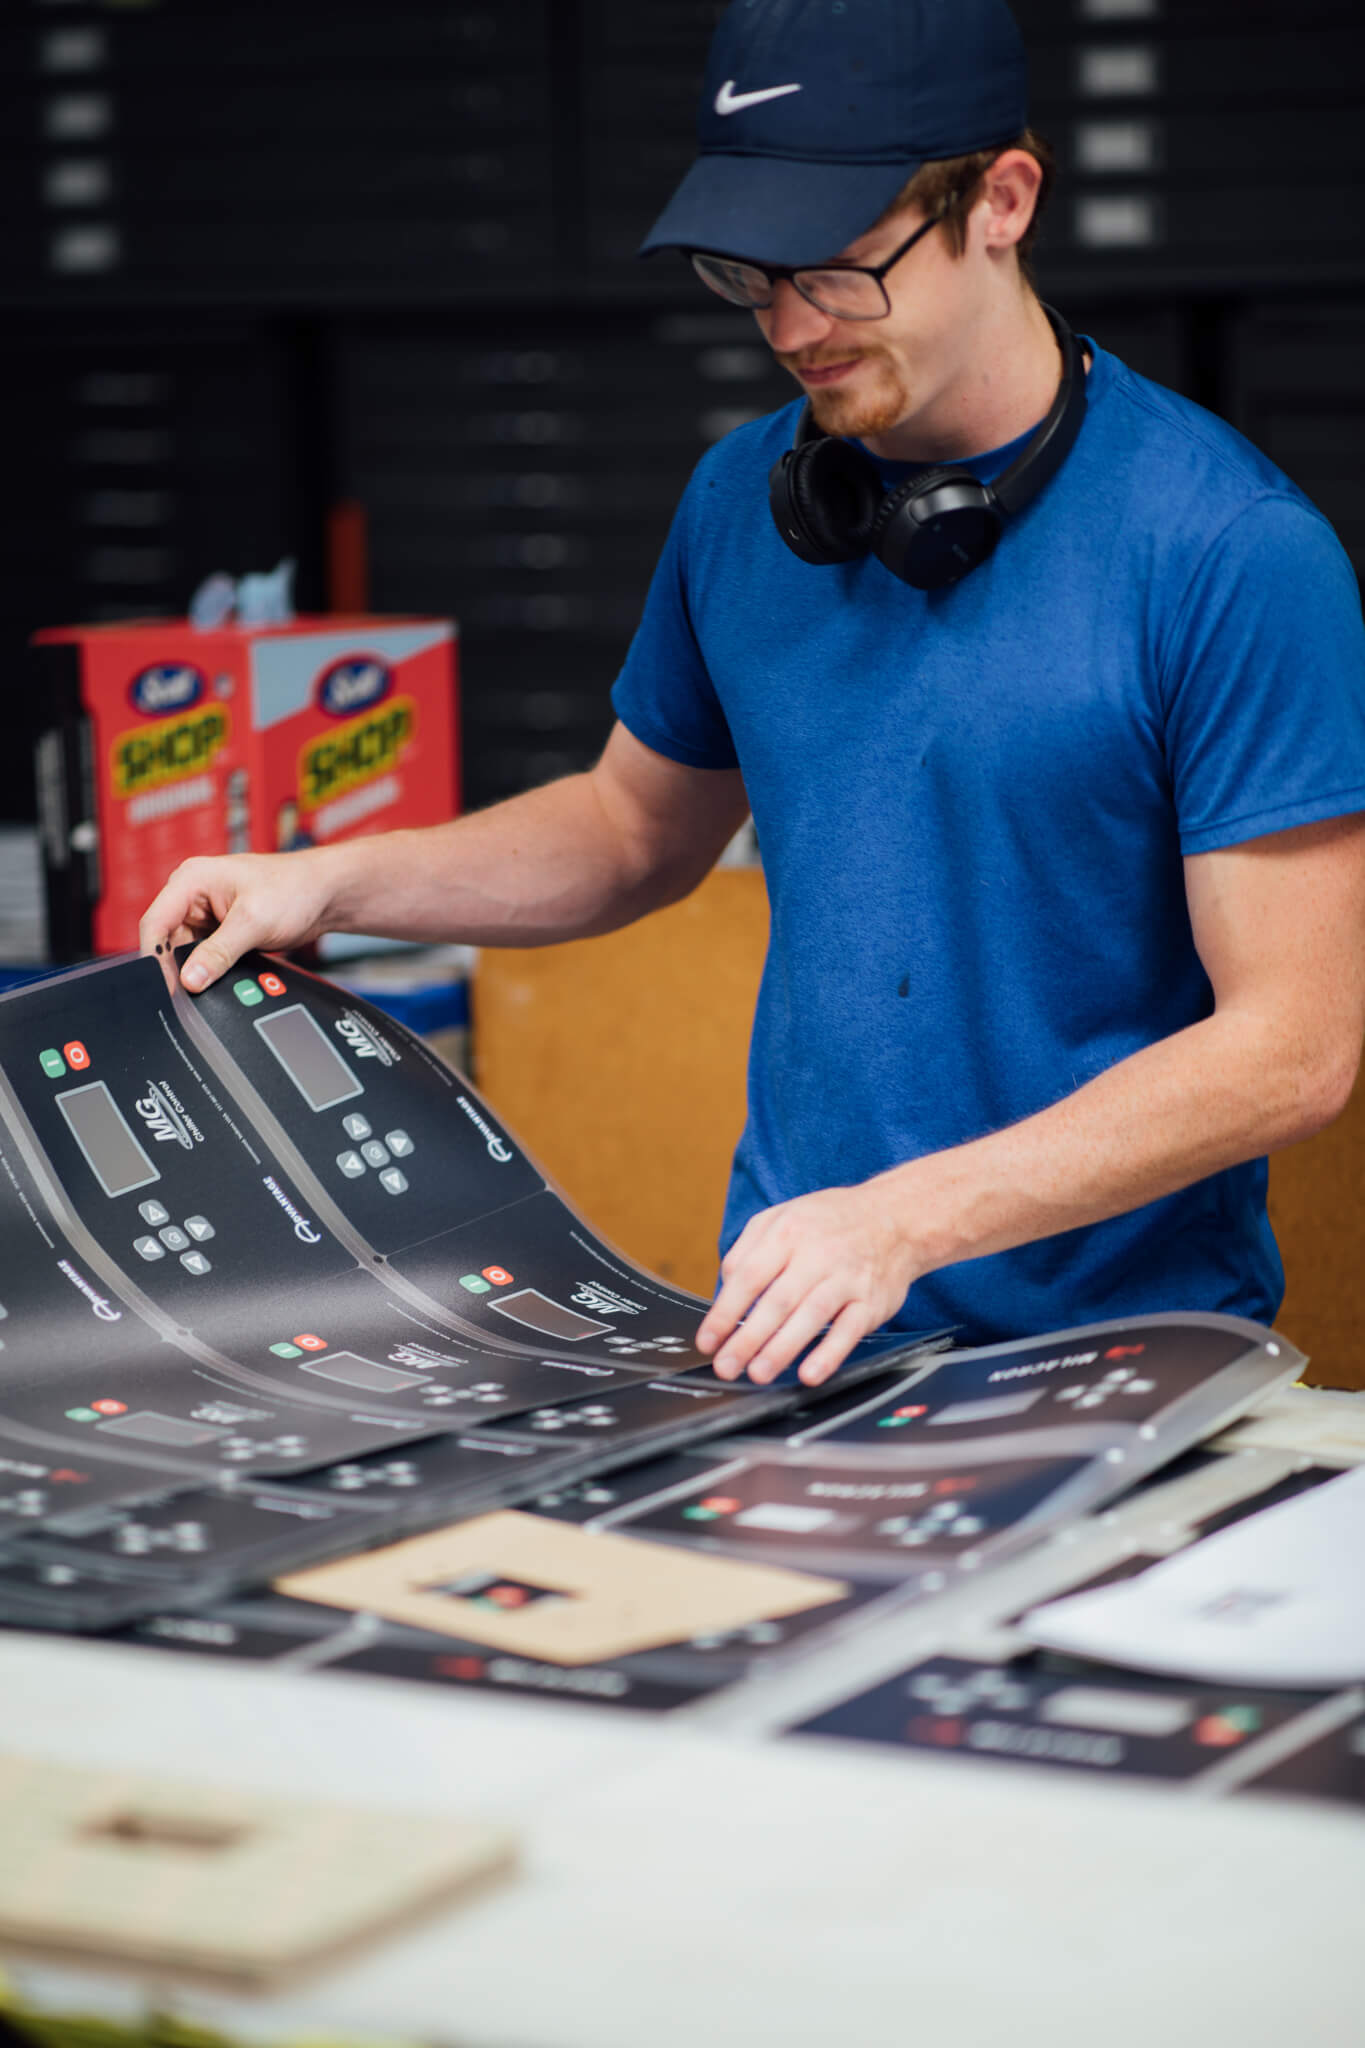 A Go Decals worker sorts graphic overlays